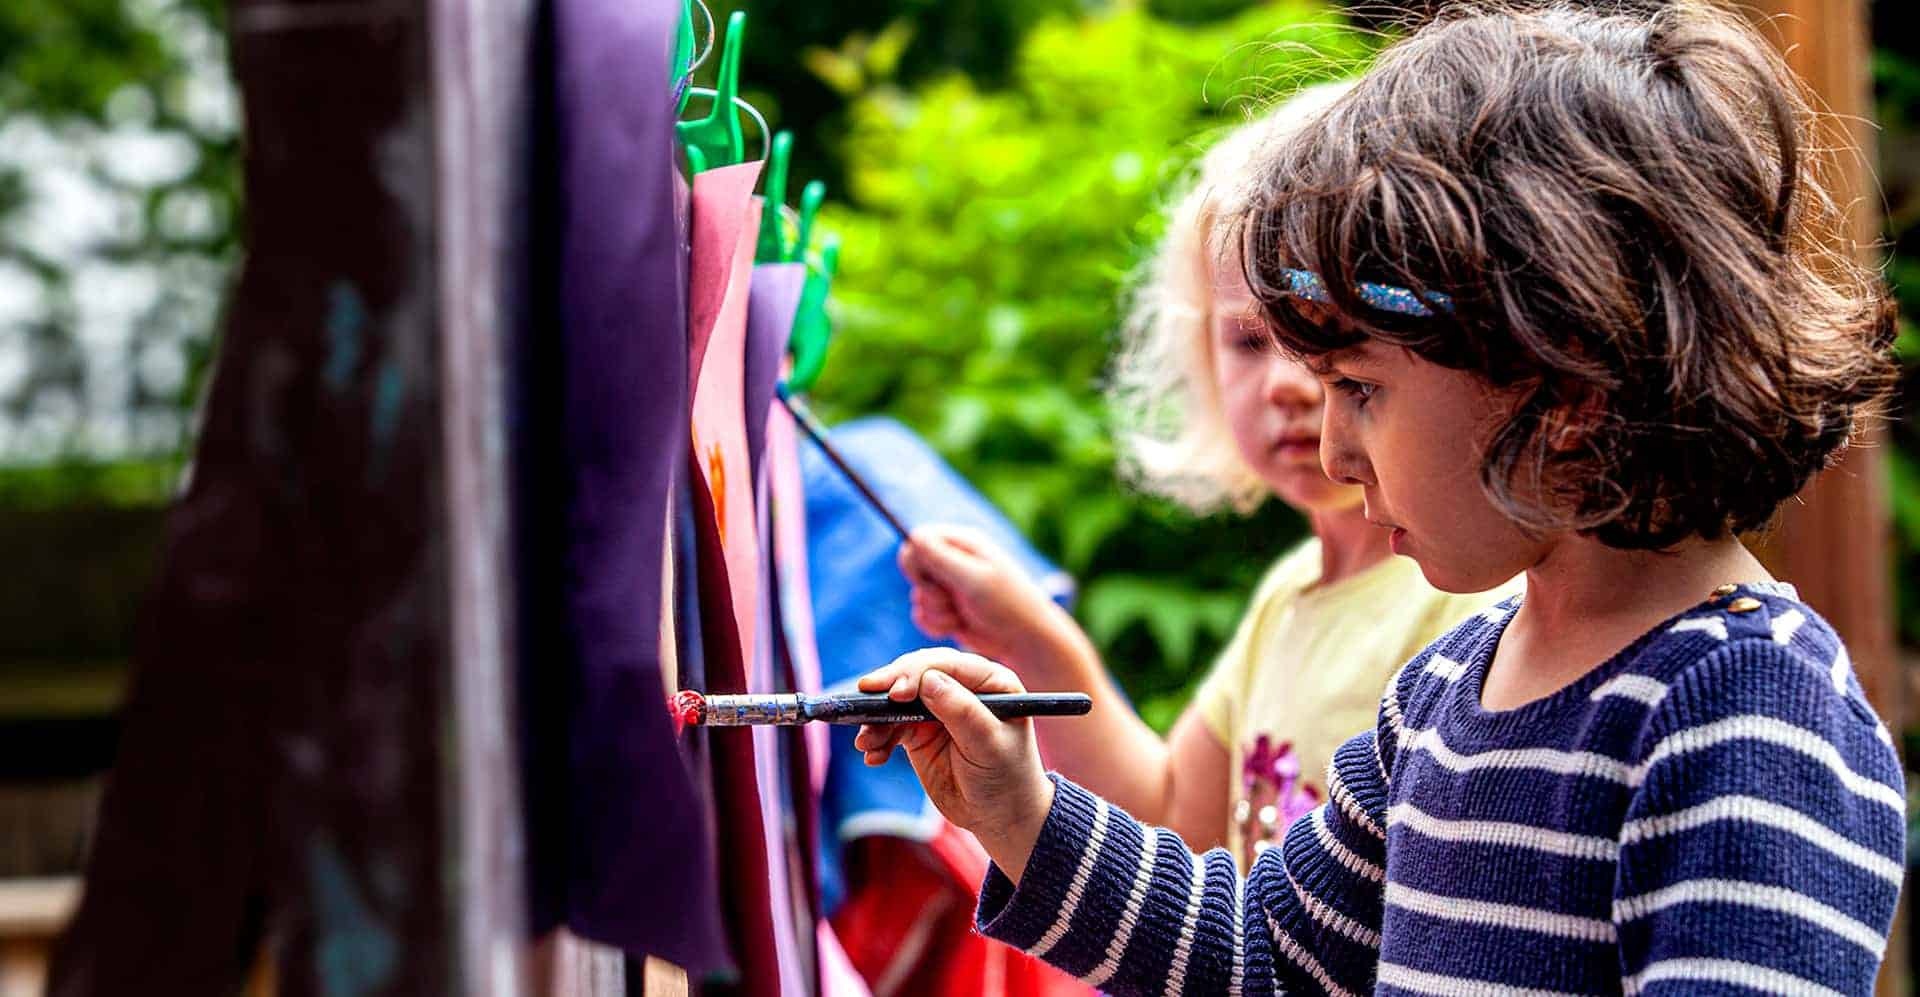 Two children painting outside in the nursery's garden